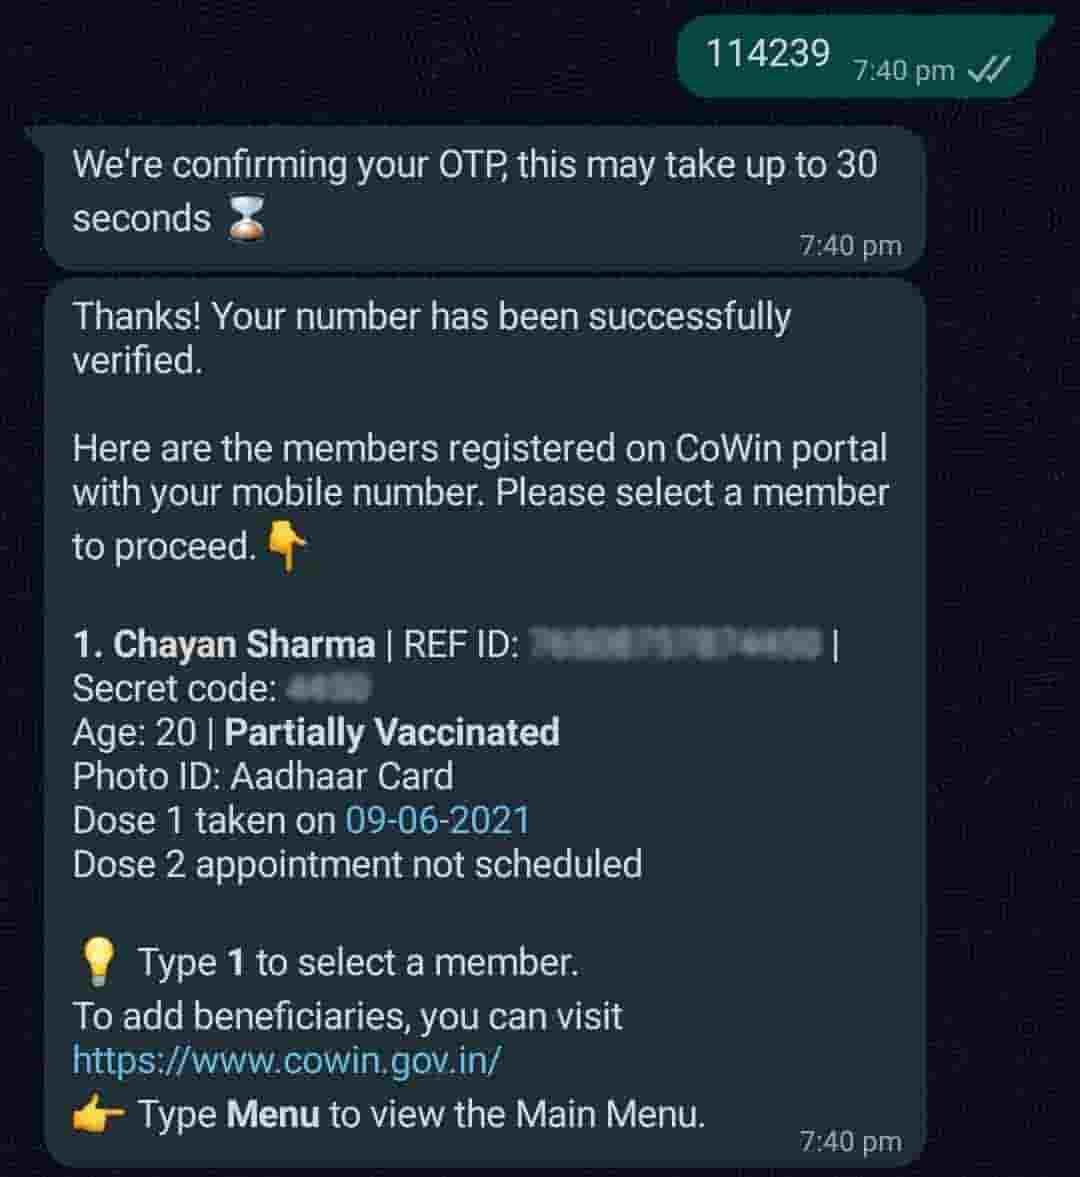 how to book covid 19 vaccine appointment on whatsapp, book covid 19 vaccine appointment from whatsapp, book vaccine appointment, how to book covid vaccine appointment, covid 19, covishield, how to book covid vaccination appointment from whatsapp, whatsapp vaccination appointment